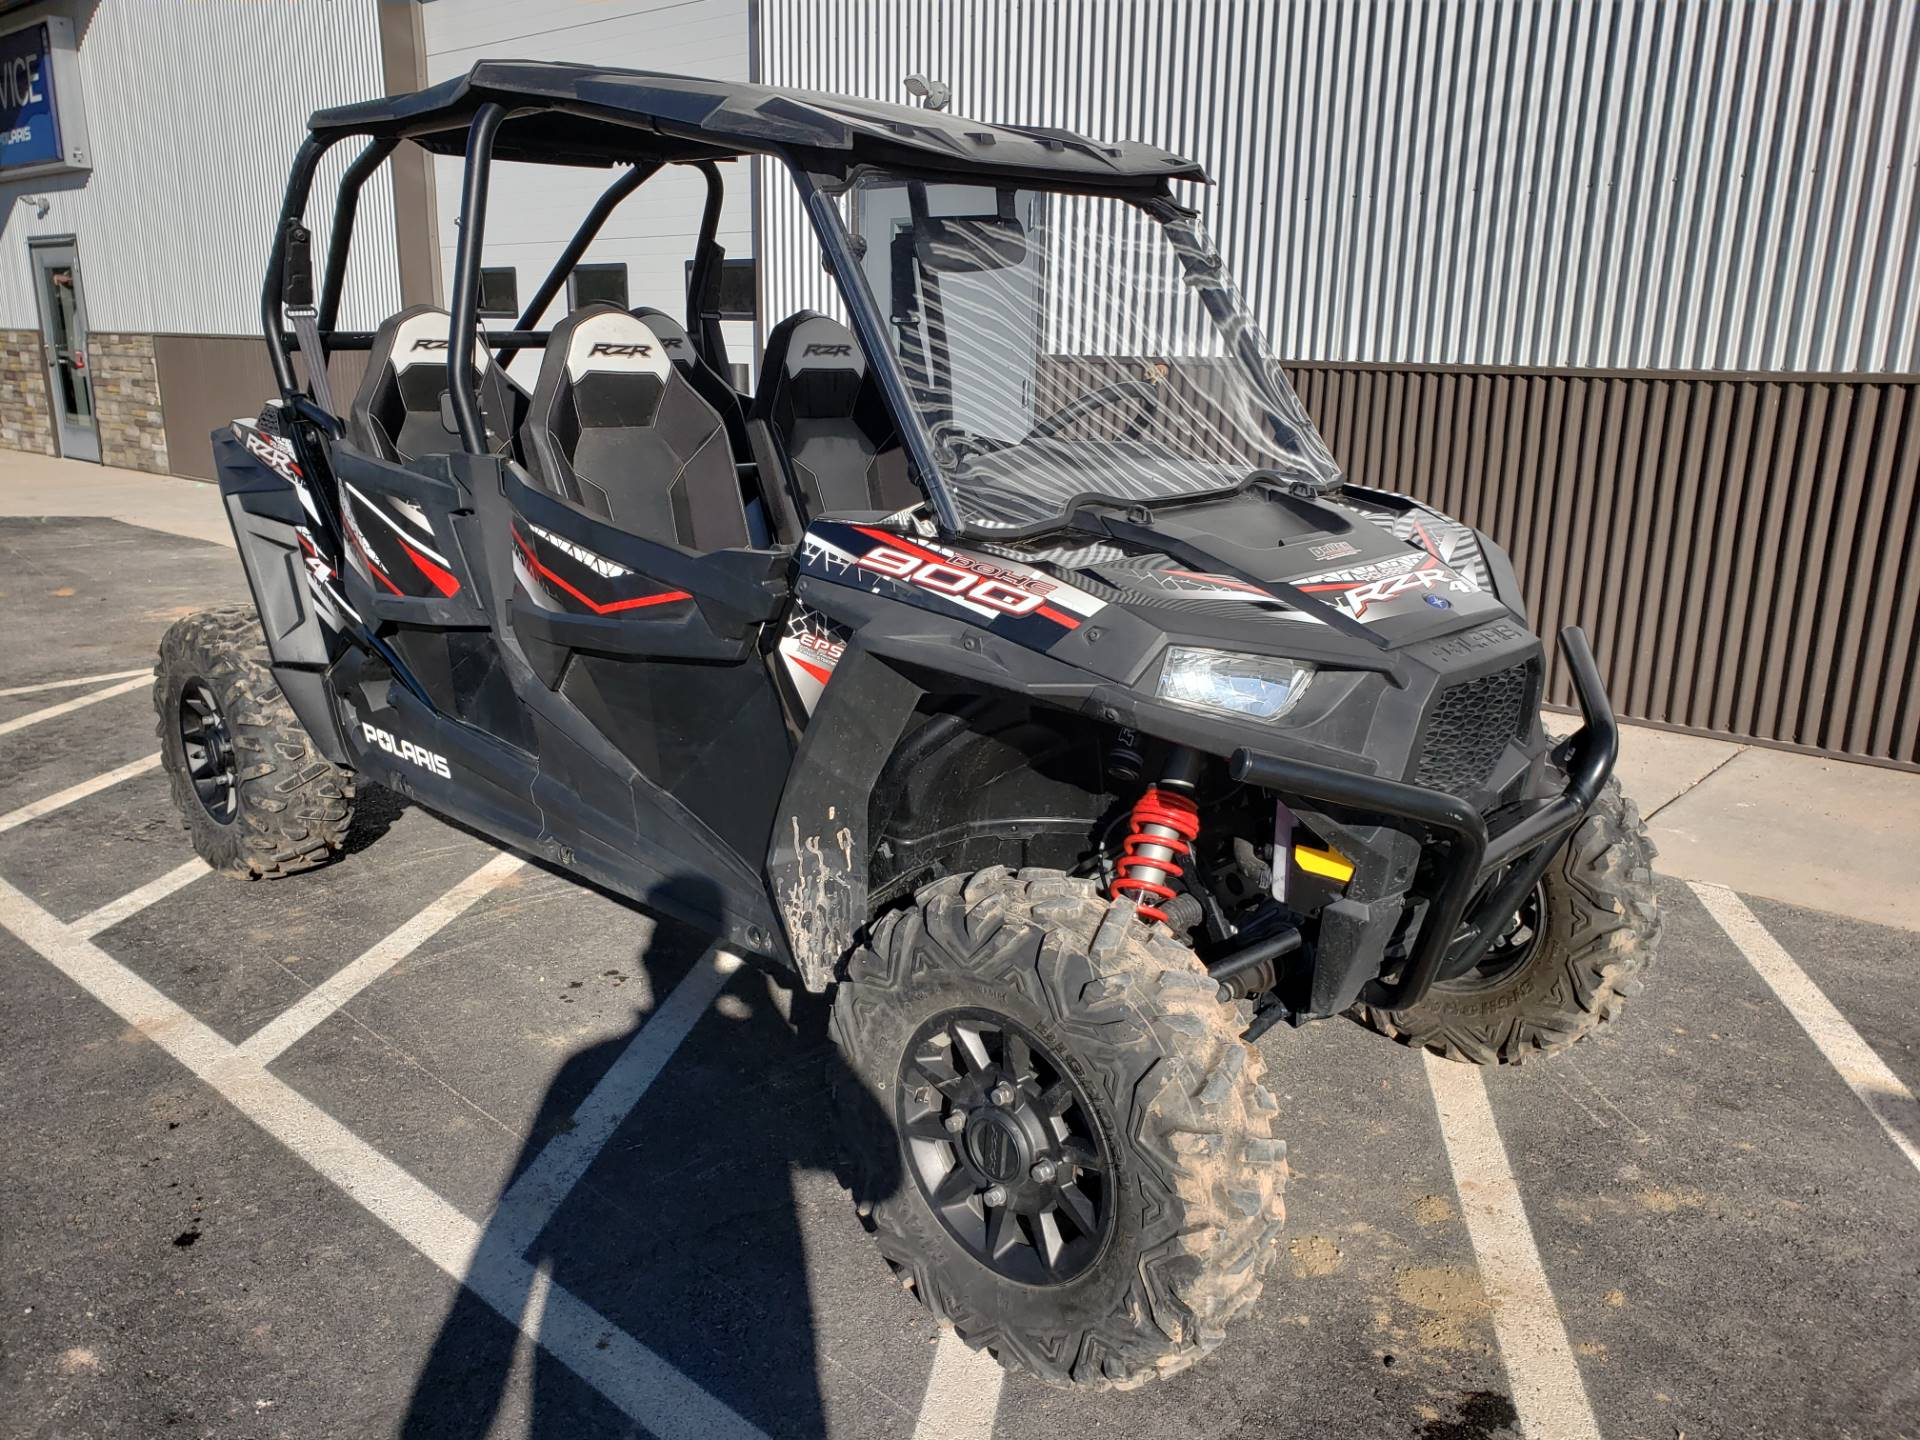 2017 Polaris RZR 4 900 EPS 7